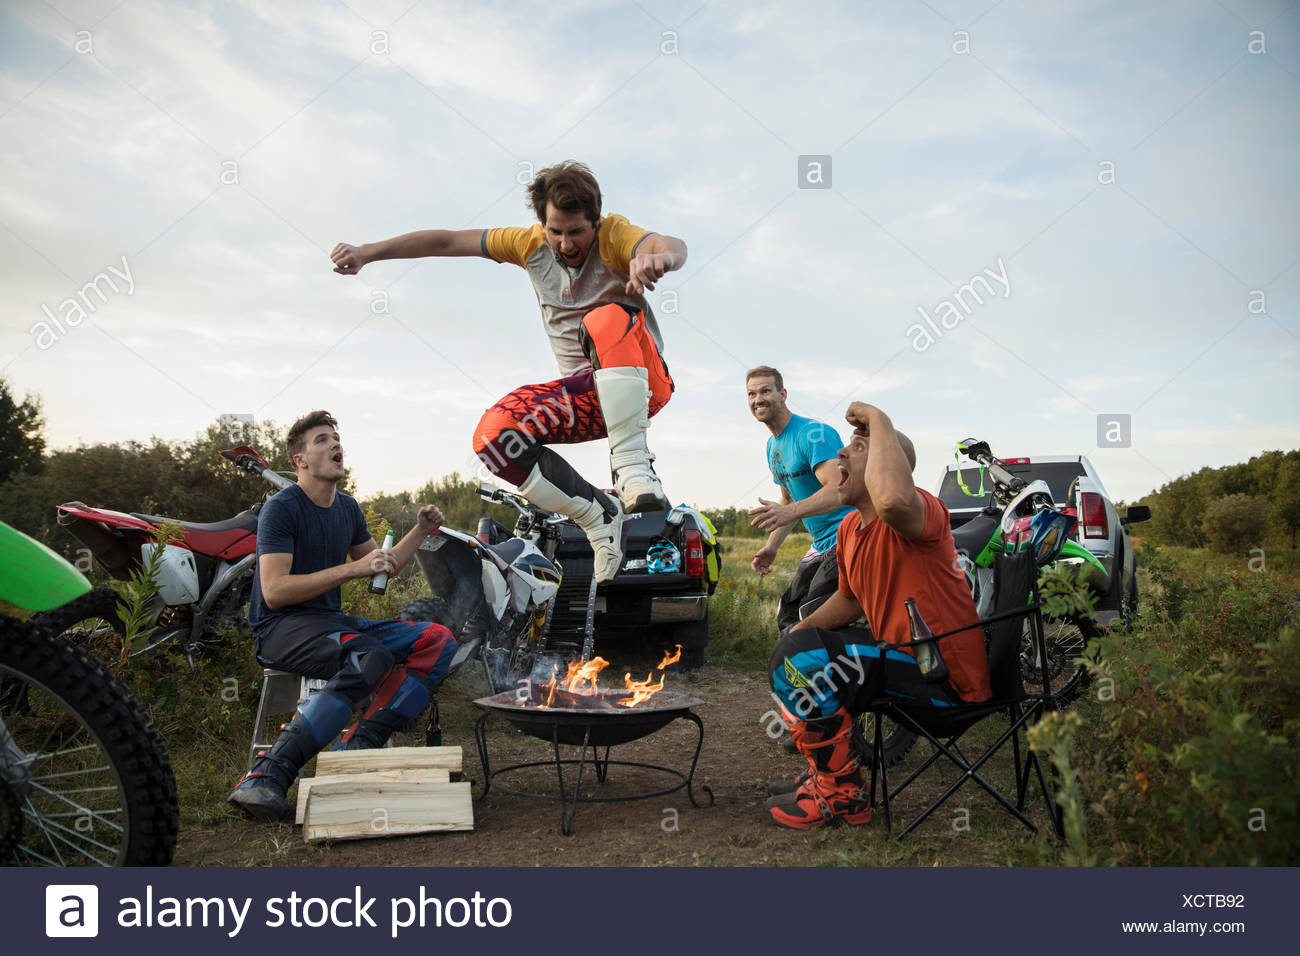 Friends watching man jumping over campfire near motorbikes - Stock Image